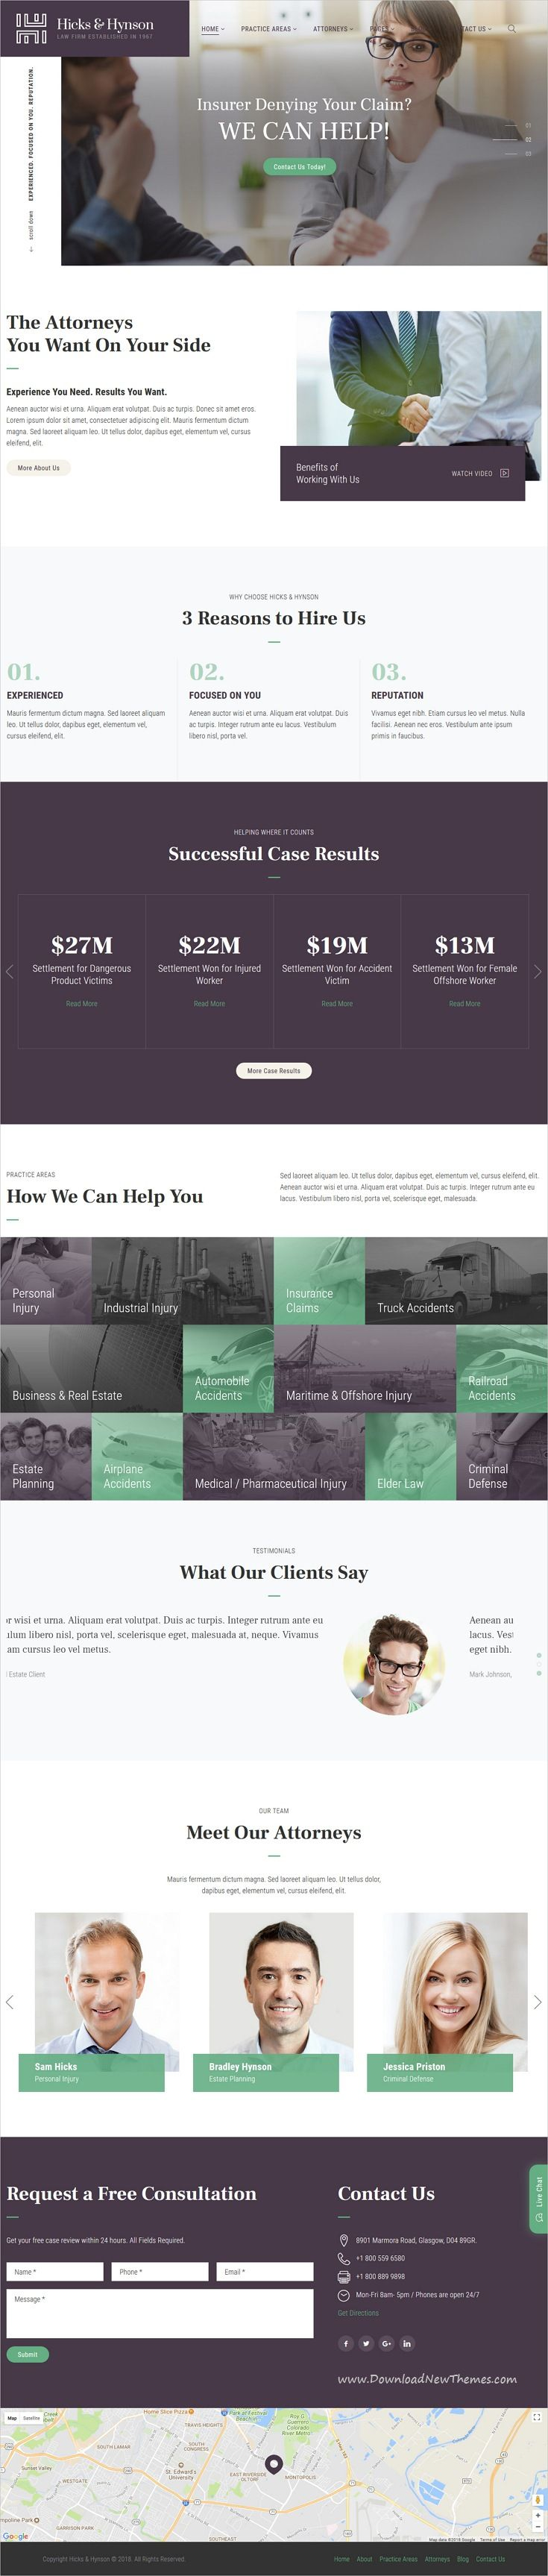 Hicks & Hynson - Law Firm HTML Template